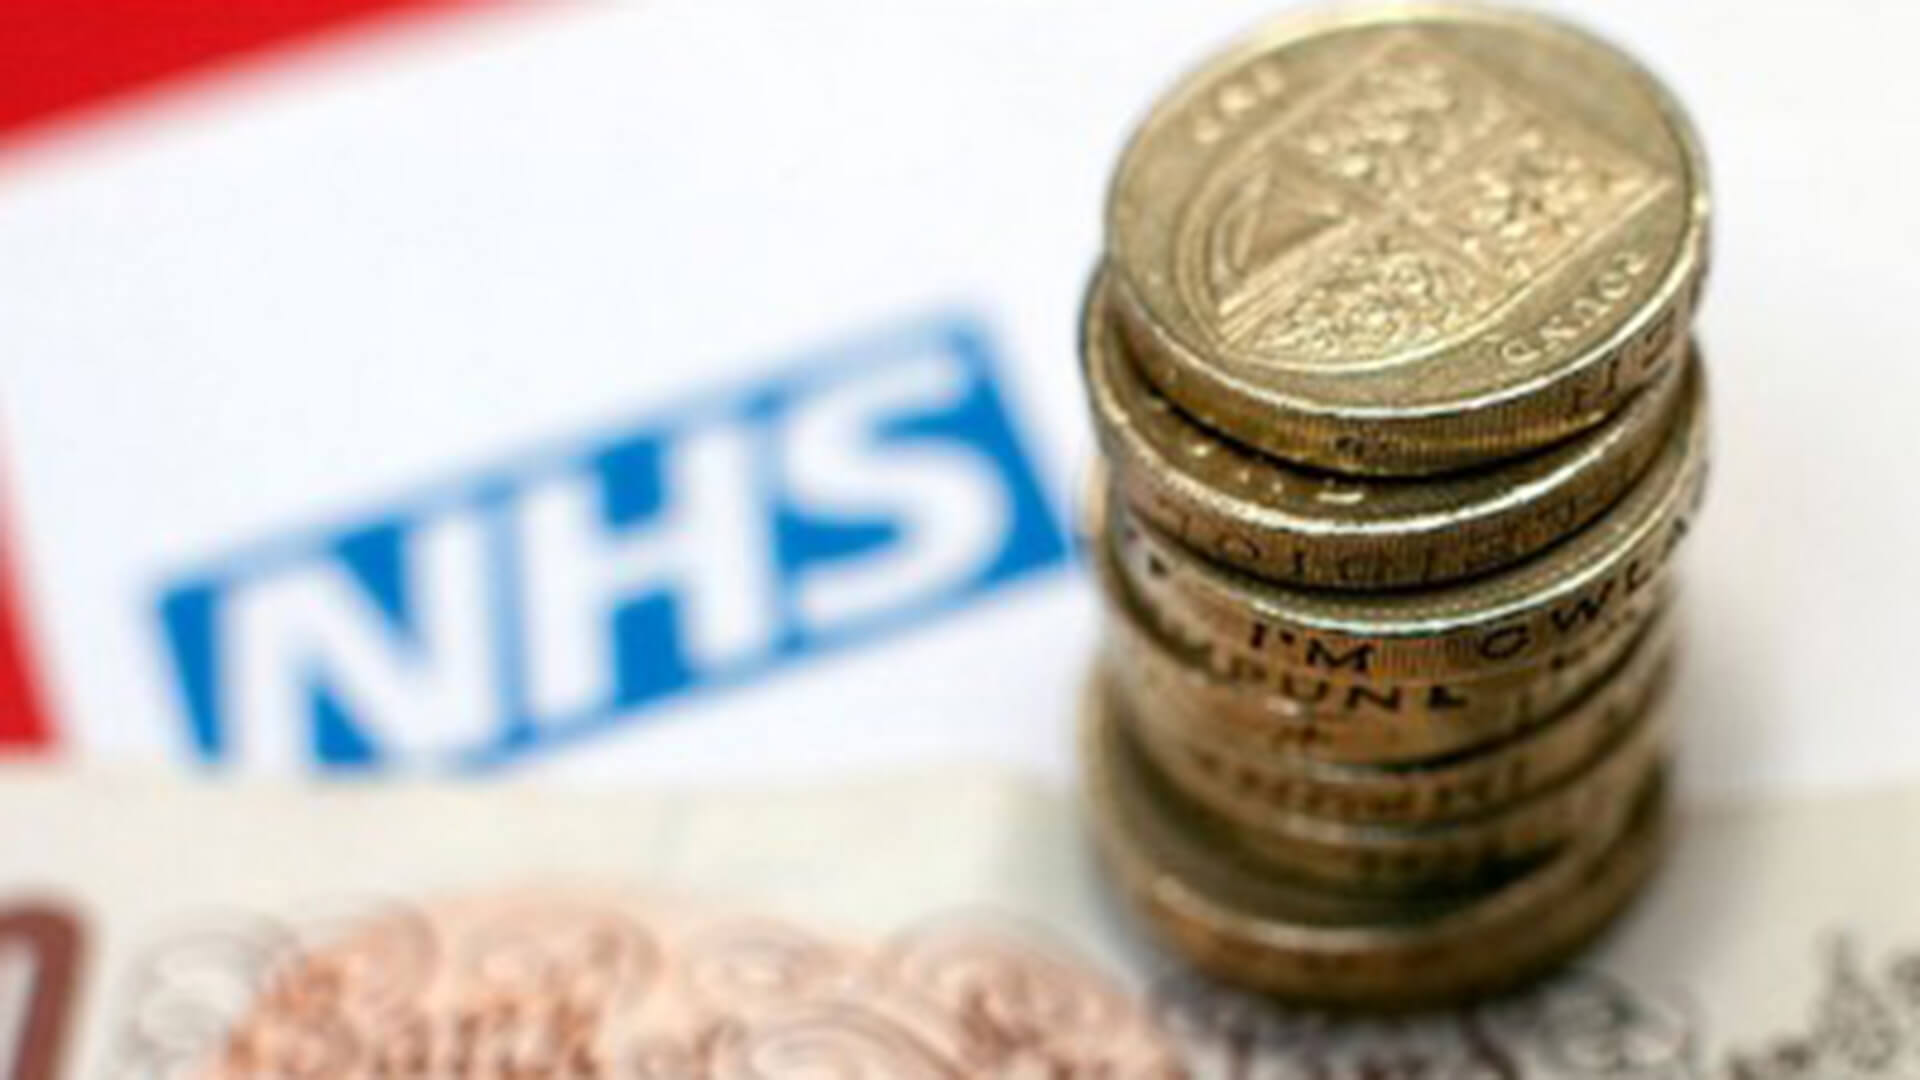 The NHS logo on a piece of paper with money on top of it